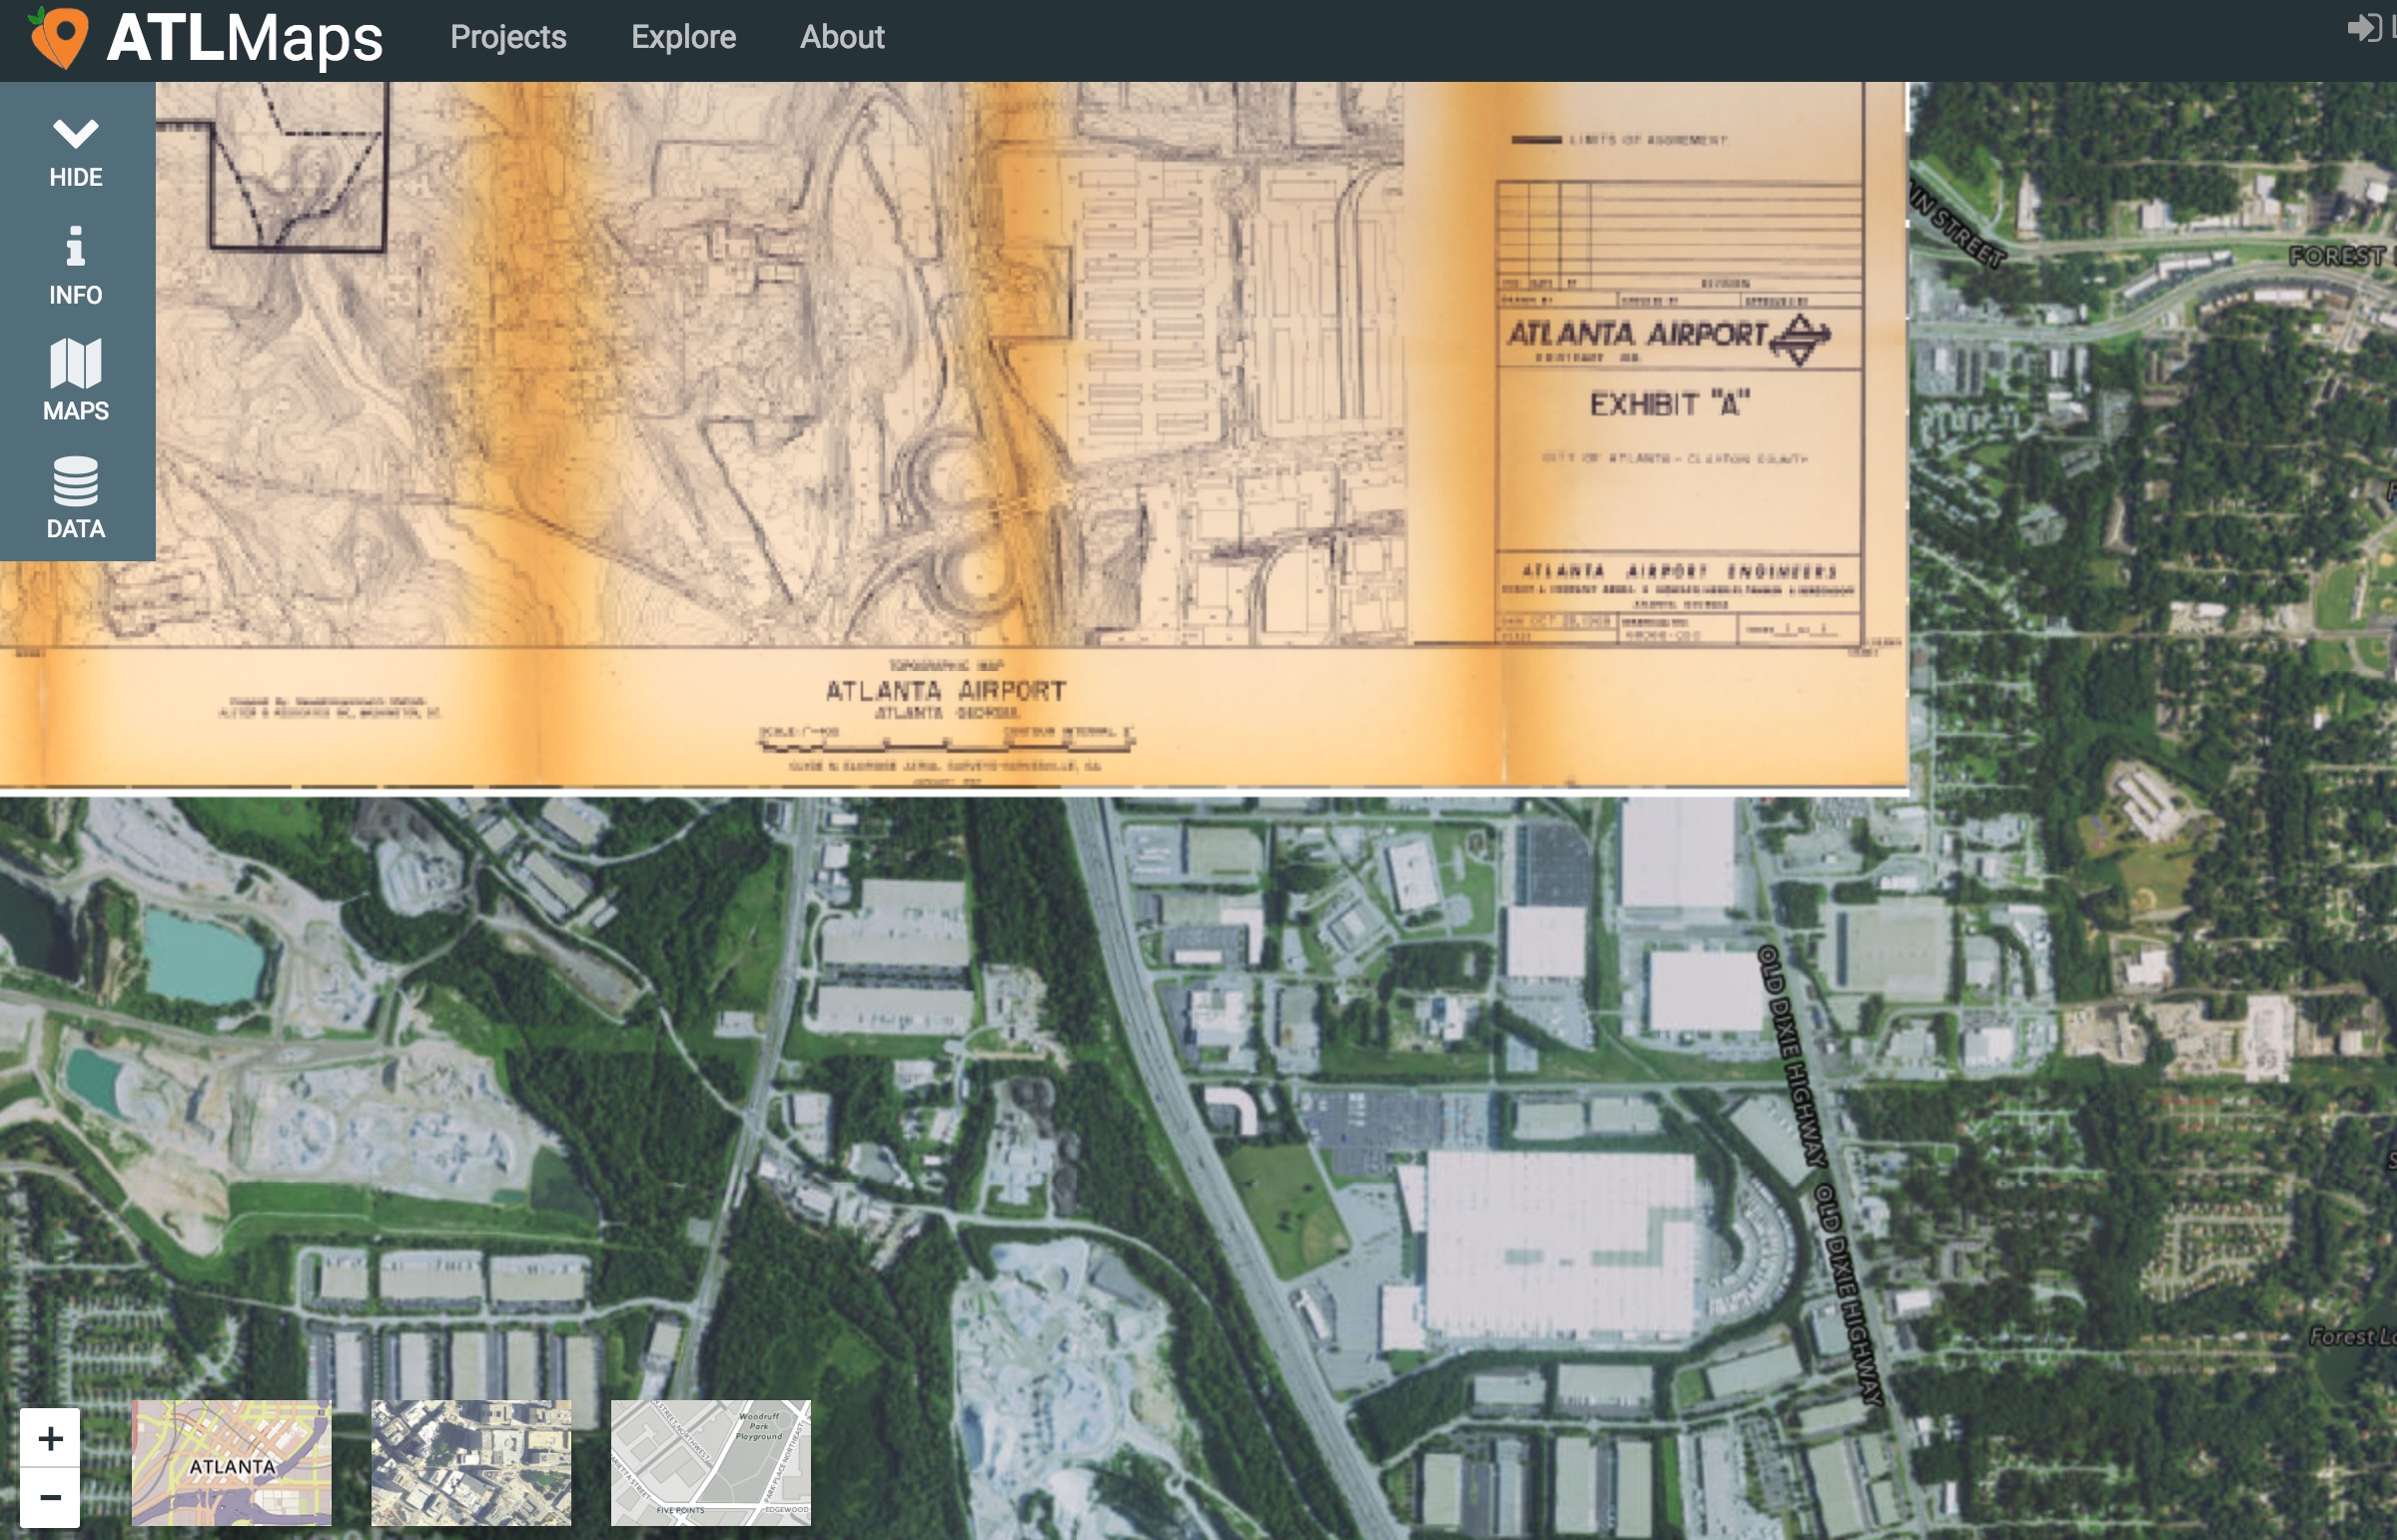 Screenshot showing map layers on the ATLMaps site